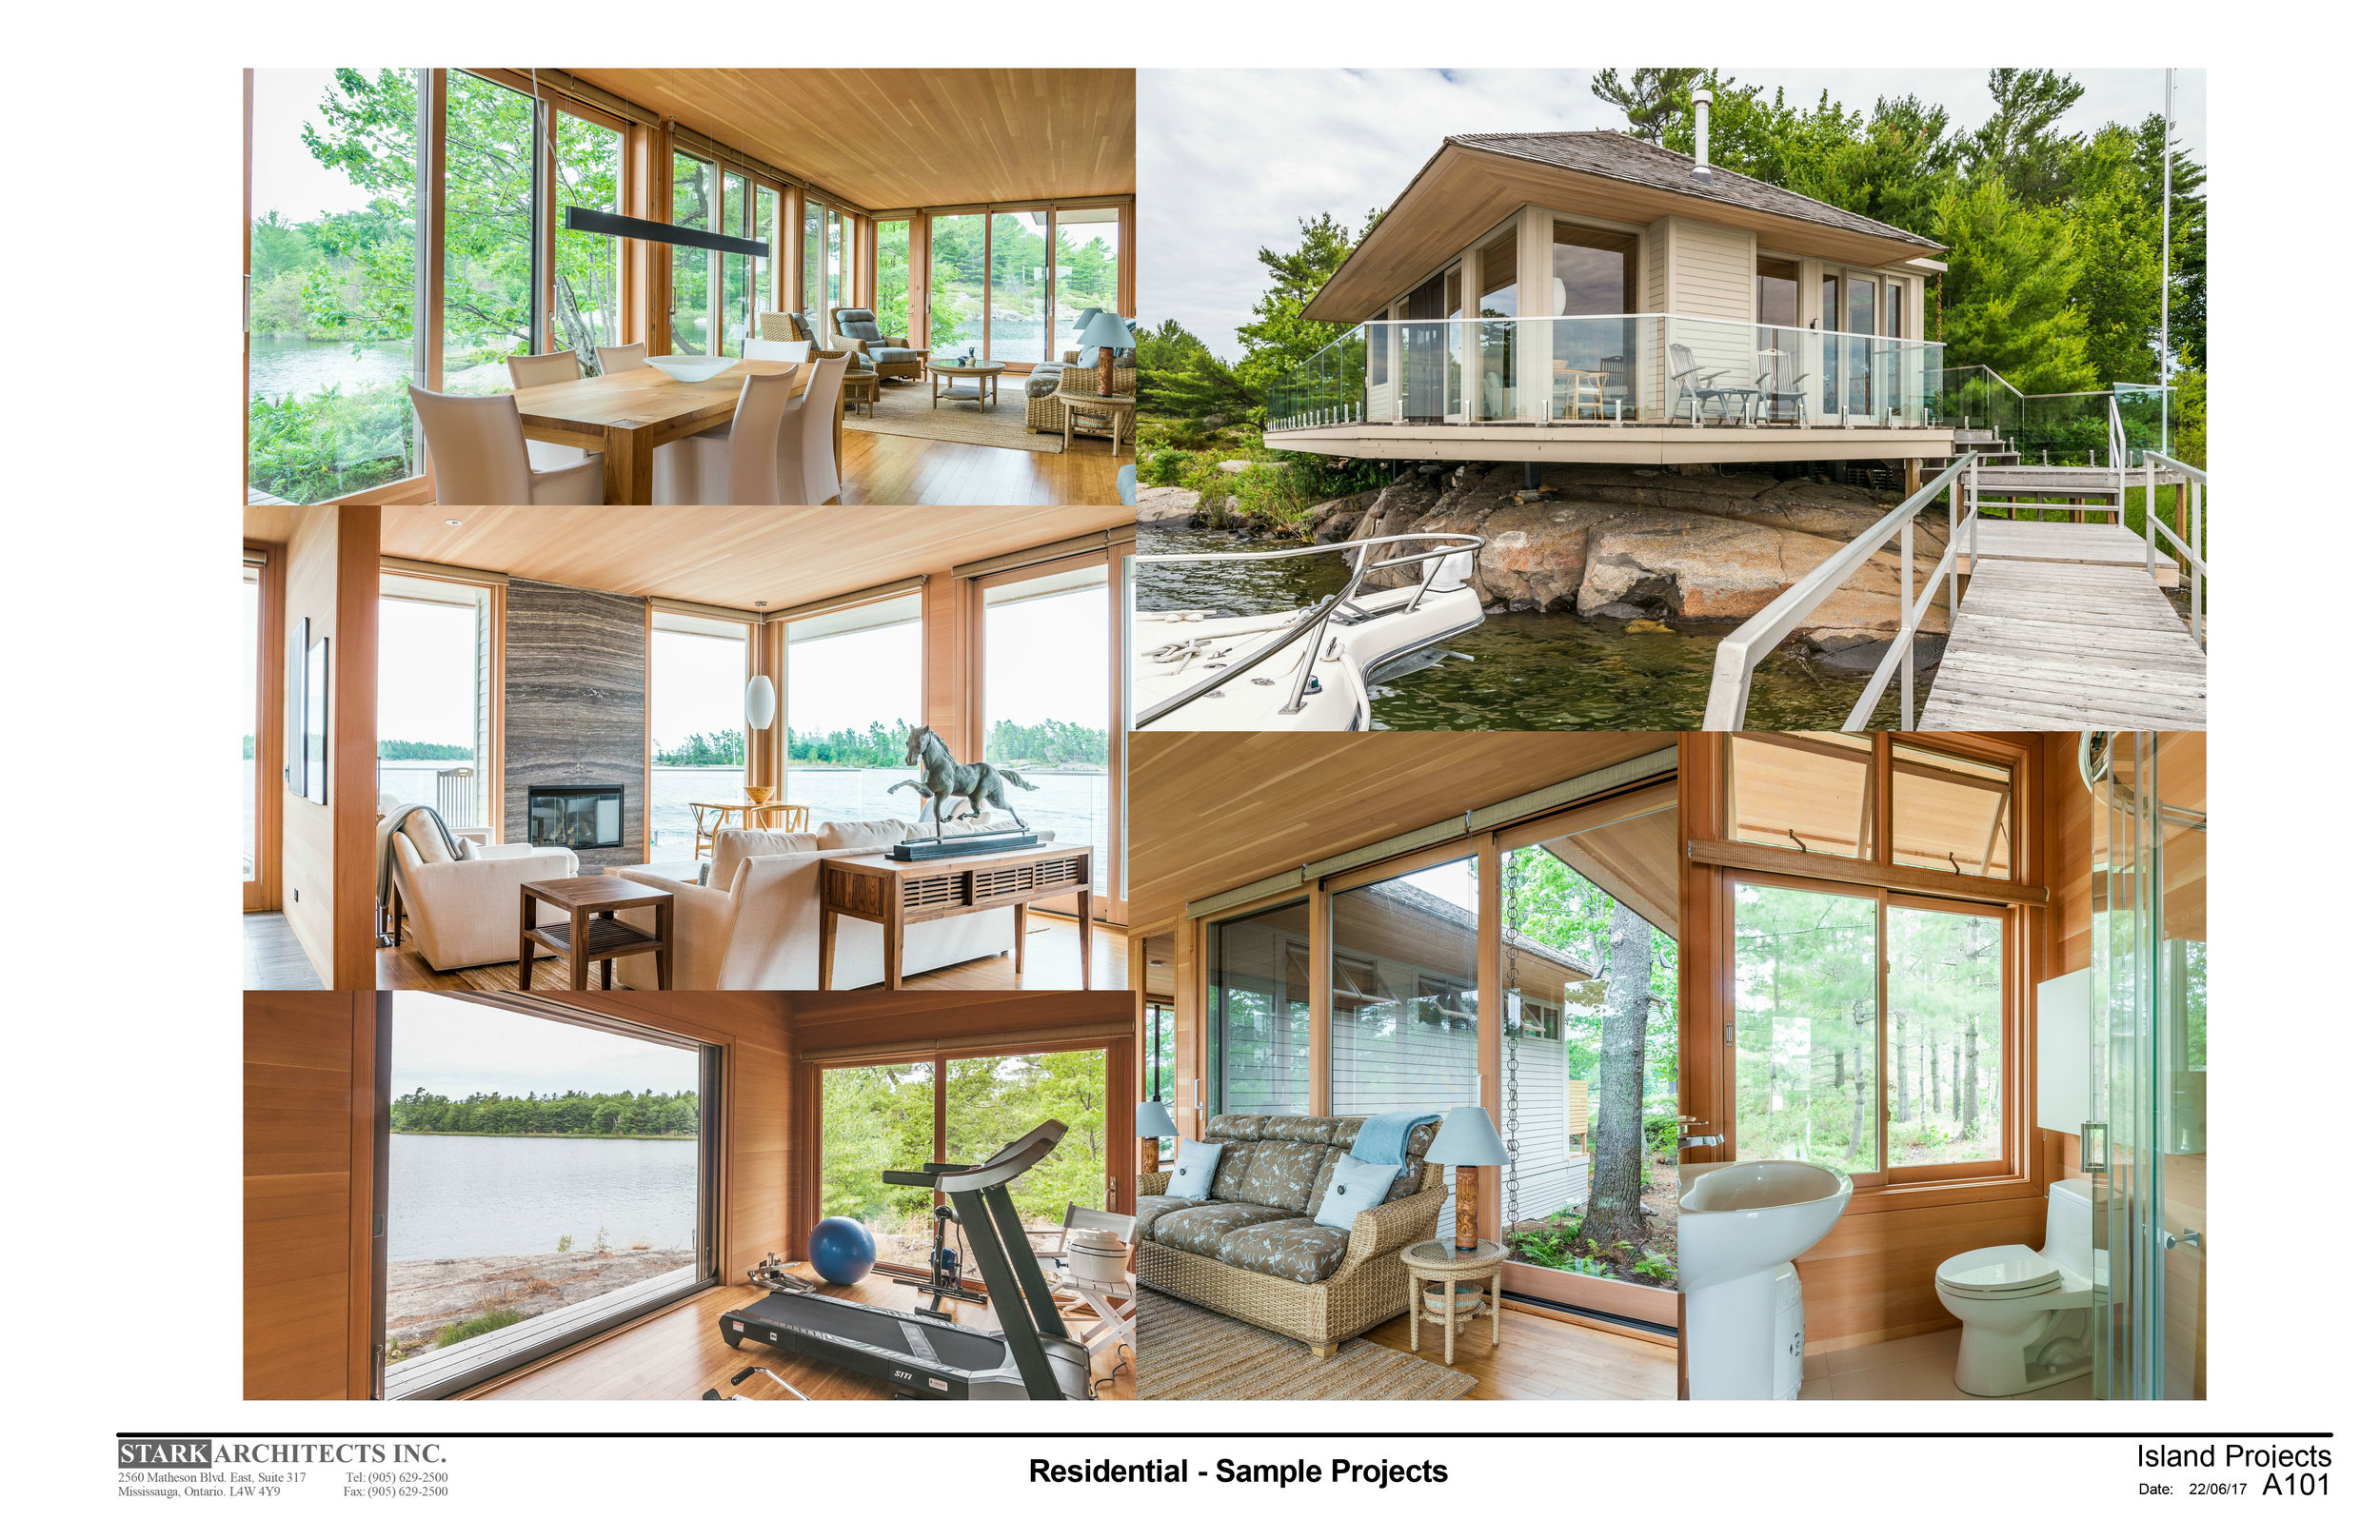 STARK ARCHITECTS INC - SAMPLE PROJECTS - RESIDENTIAL - 22-06-17 - A101.jpg